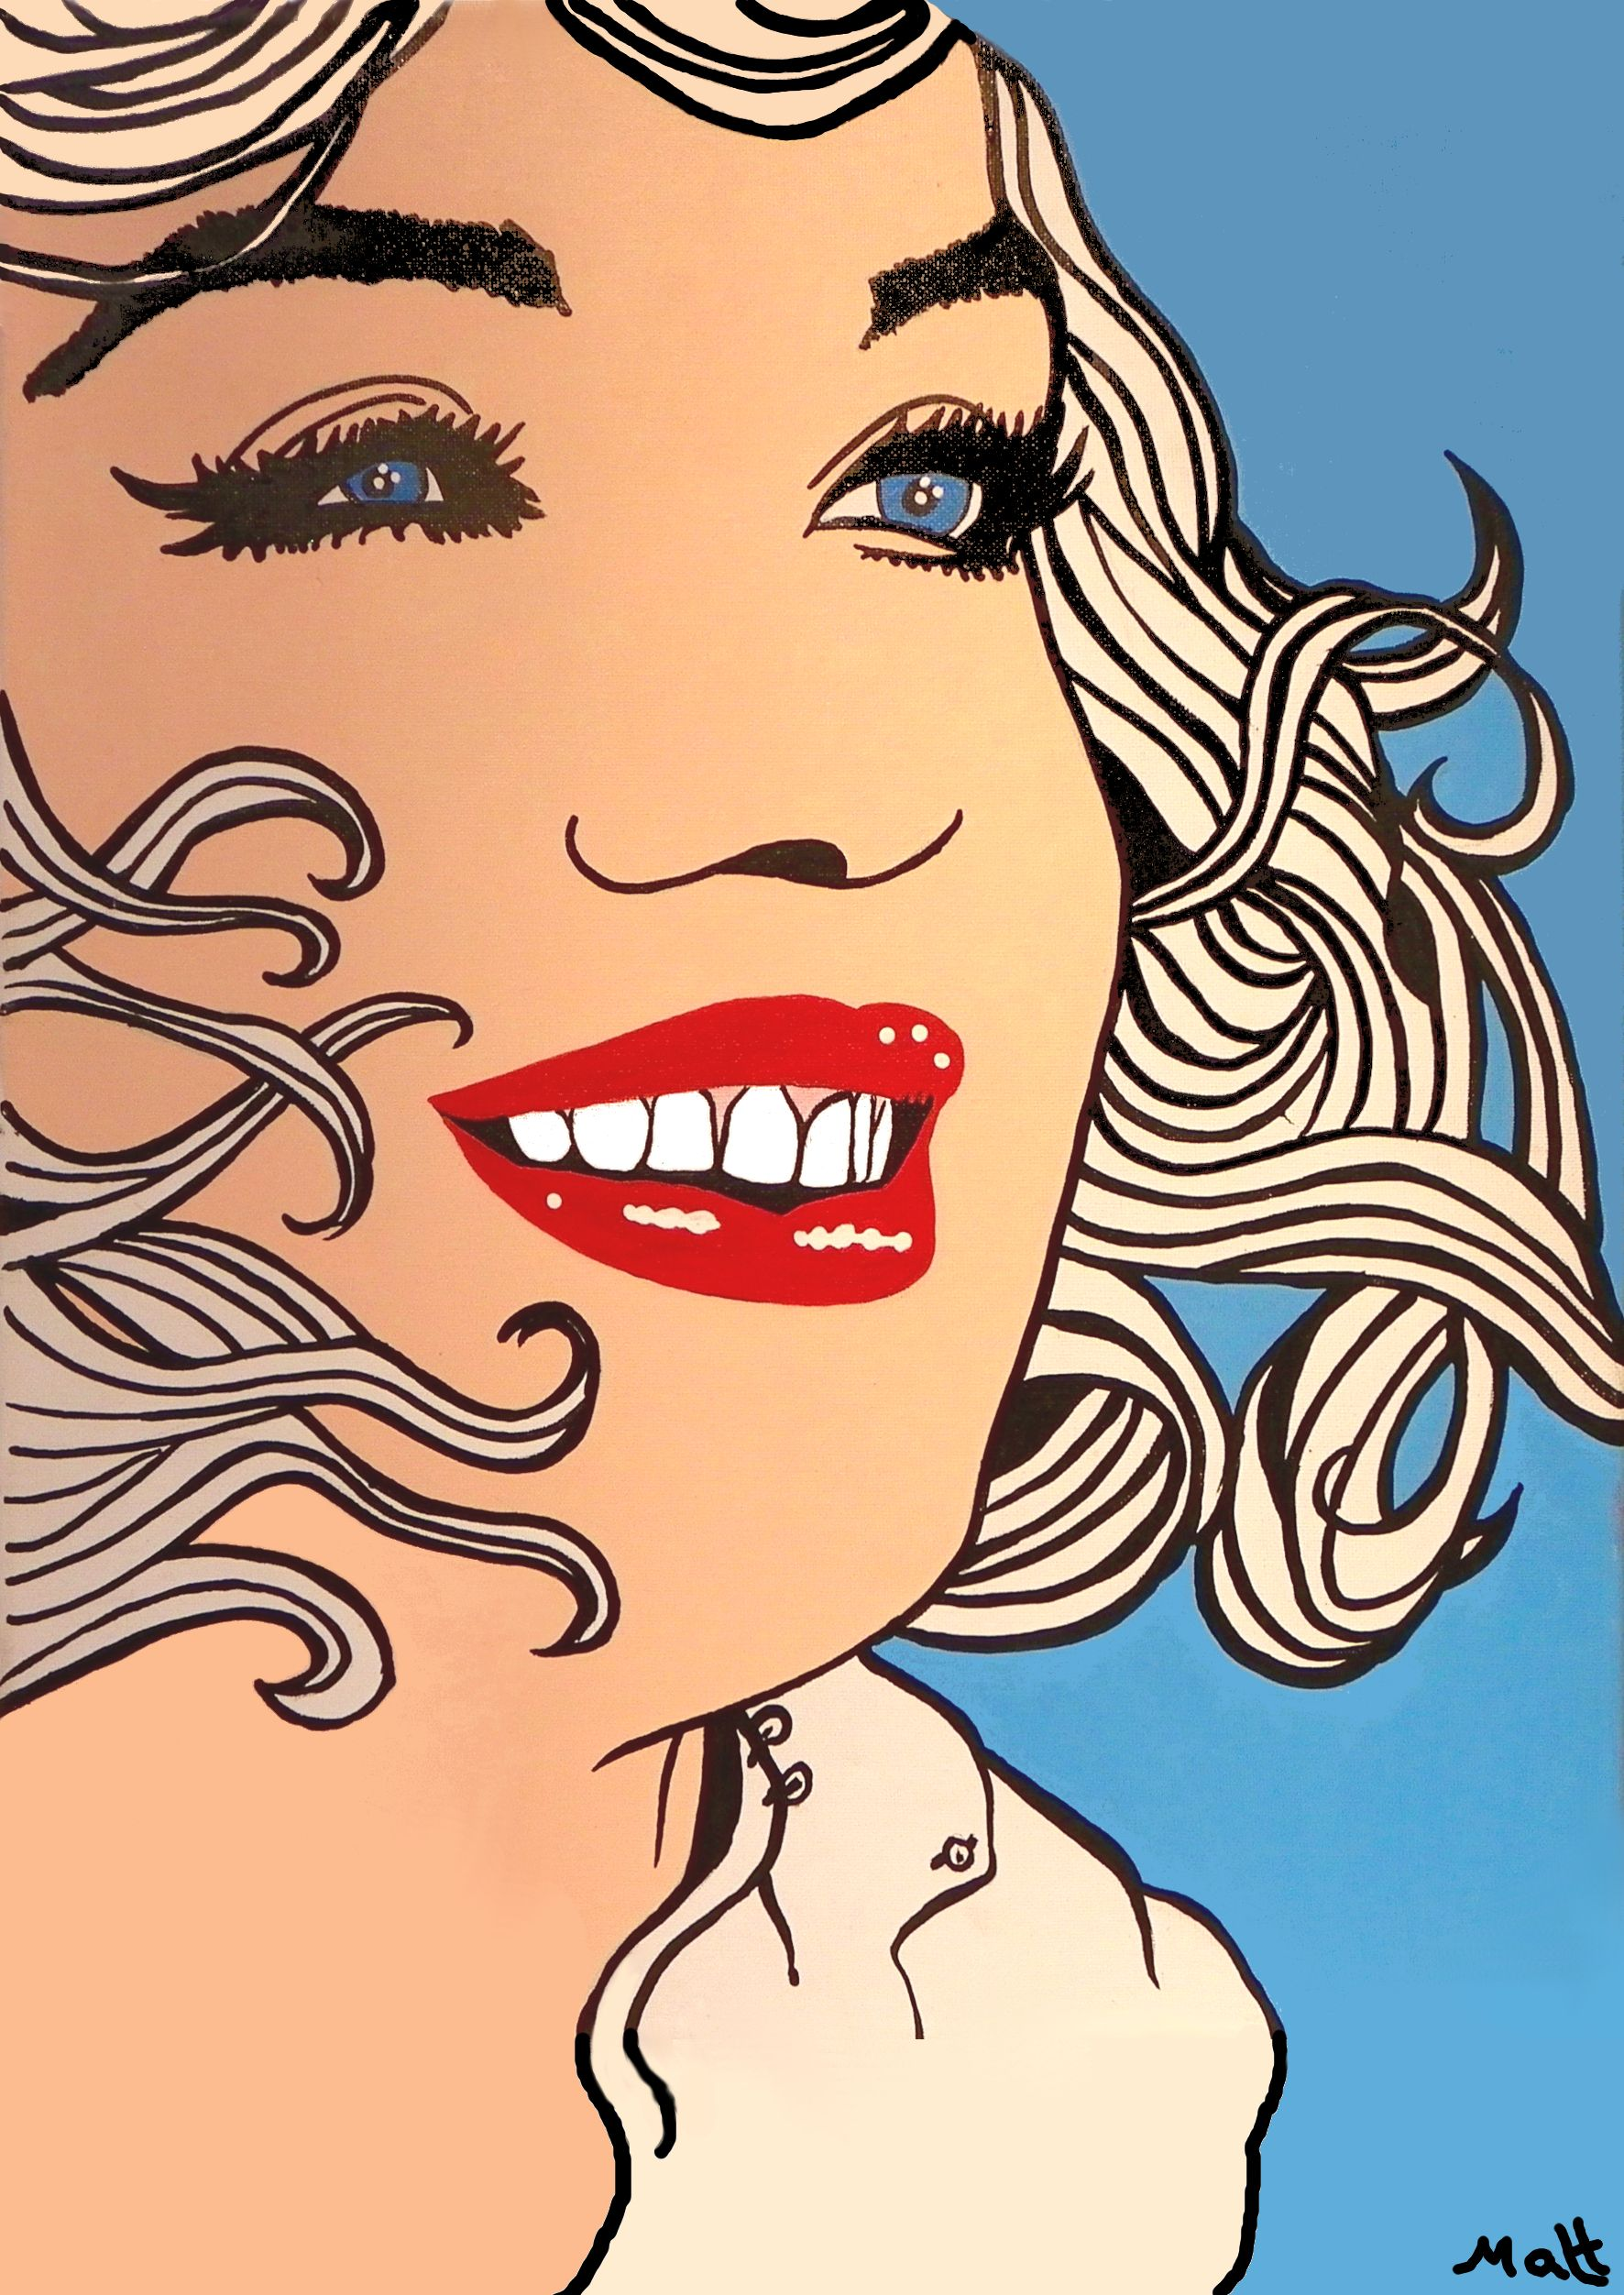 Marilyn monroe pop art greetings card from the original matt smith marilyn monroe pop art greetings card from the original matt smith painting kristyandbryce Image collections